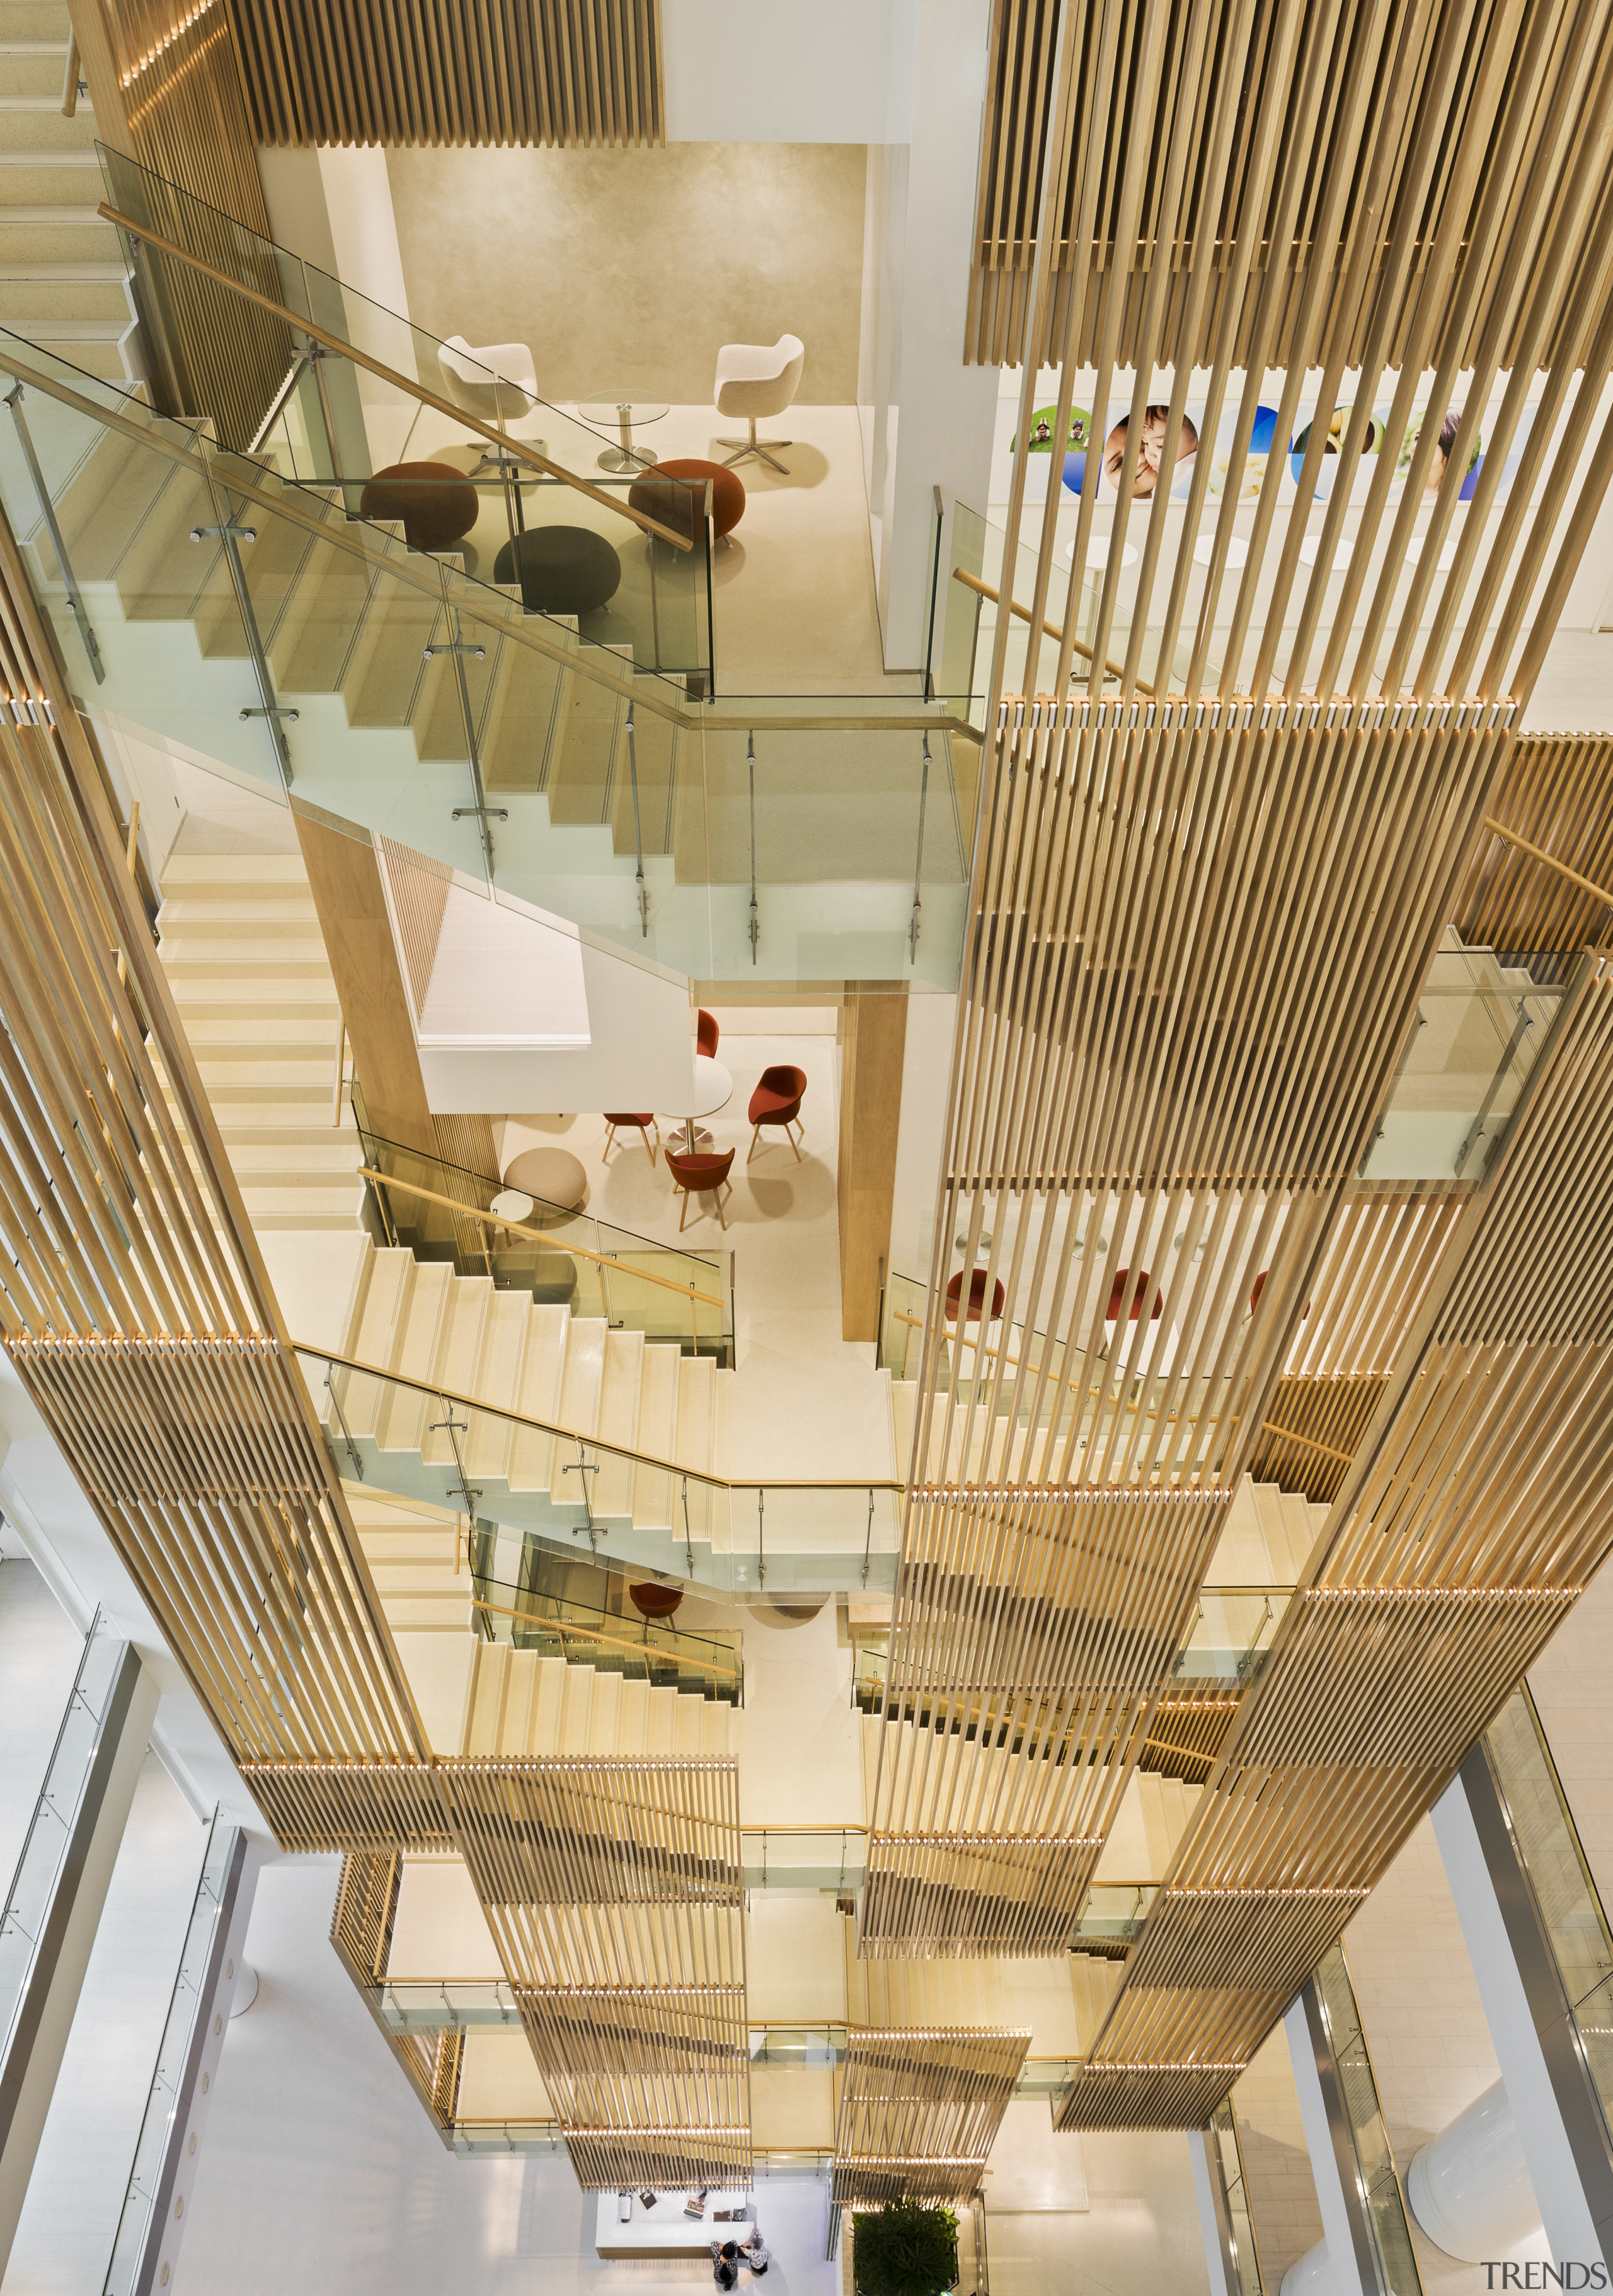 The staircase running through the atrium of this architecture, ceiling, daylighting, home, interior design, stairs, wood, orange, brown